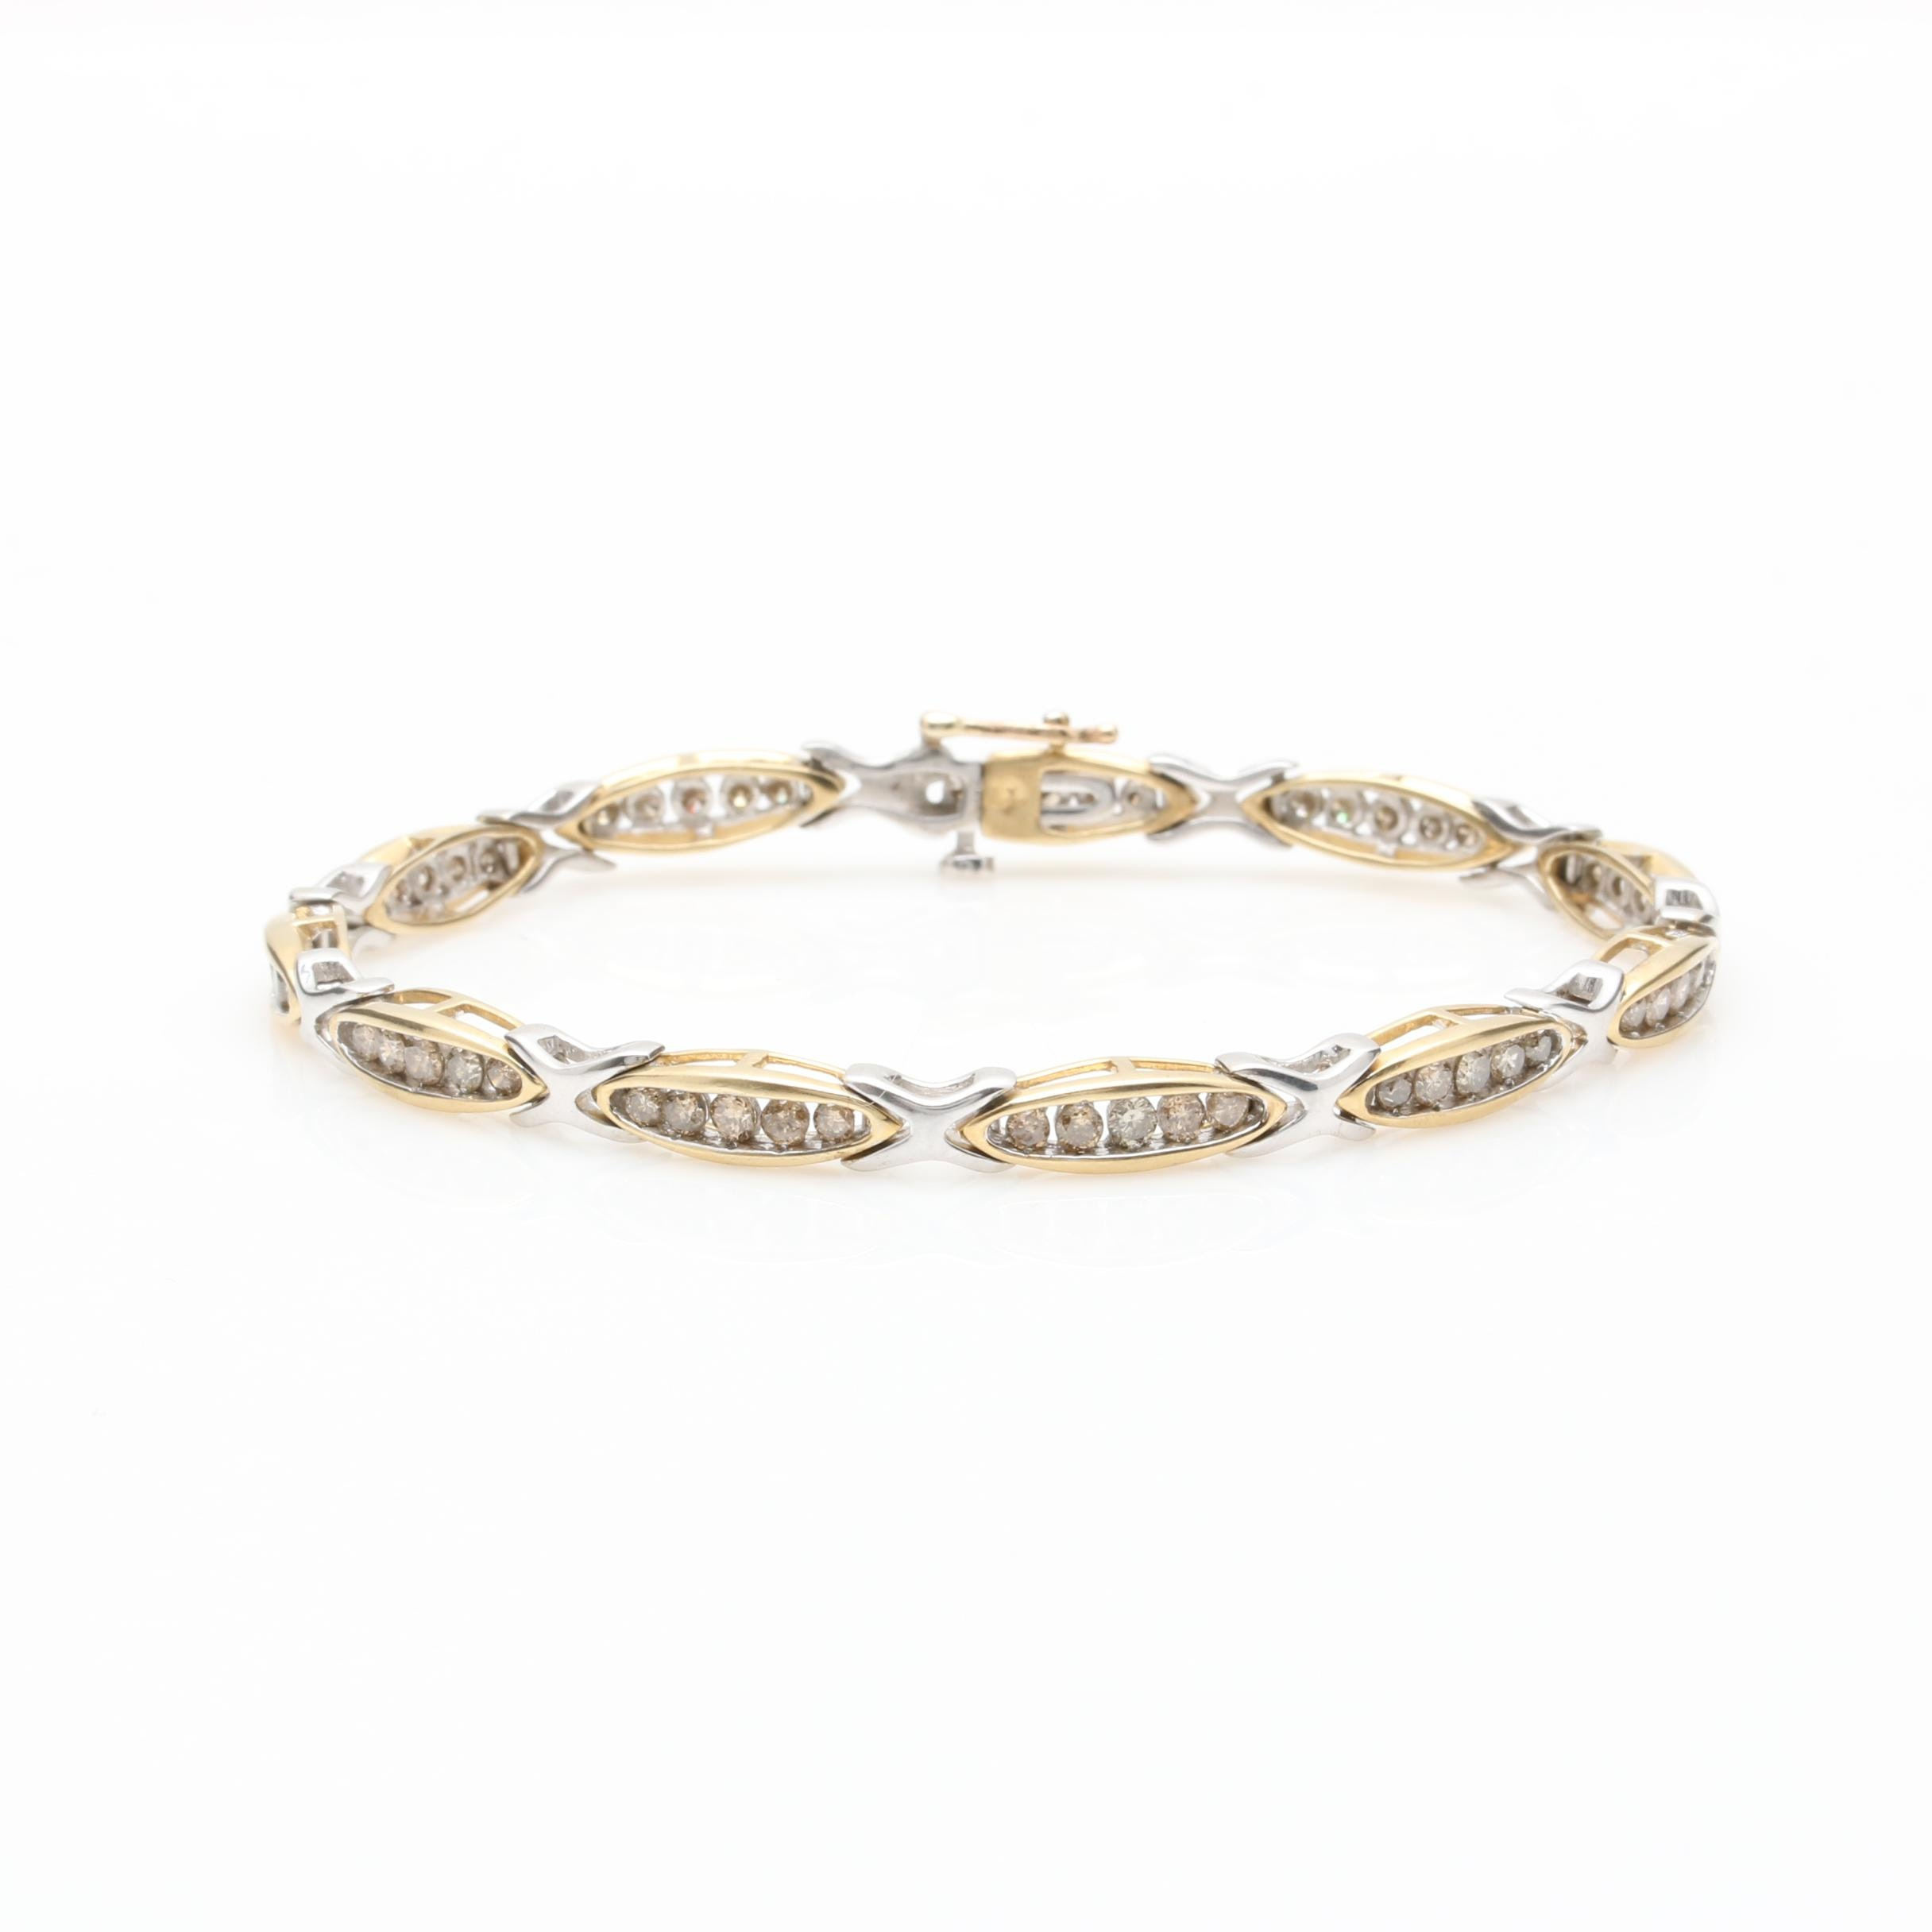 10K Yellow Gold 1.75 CTW Diamond Link Bracelet with 10K White Gold Accents